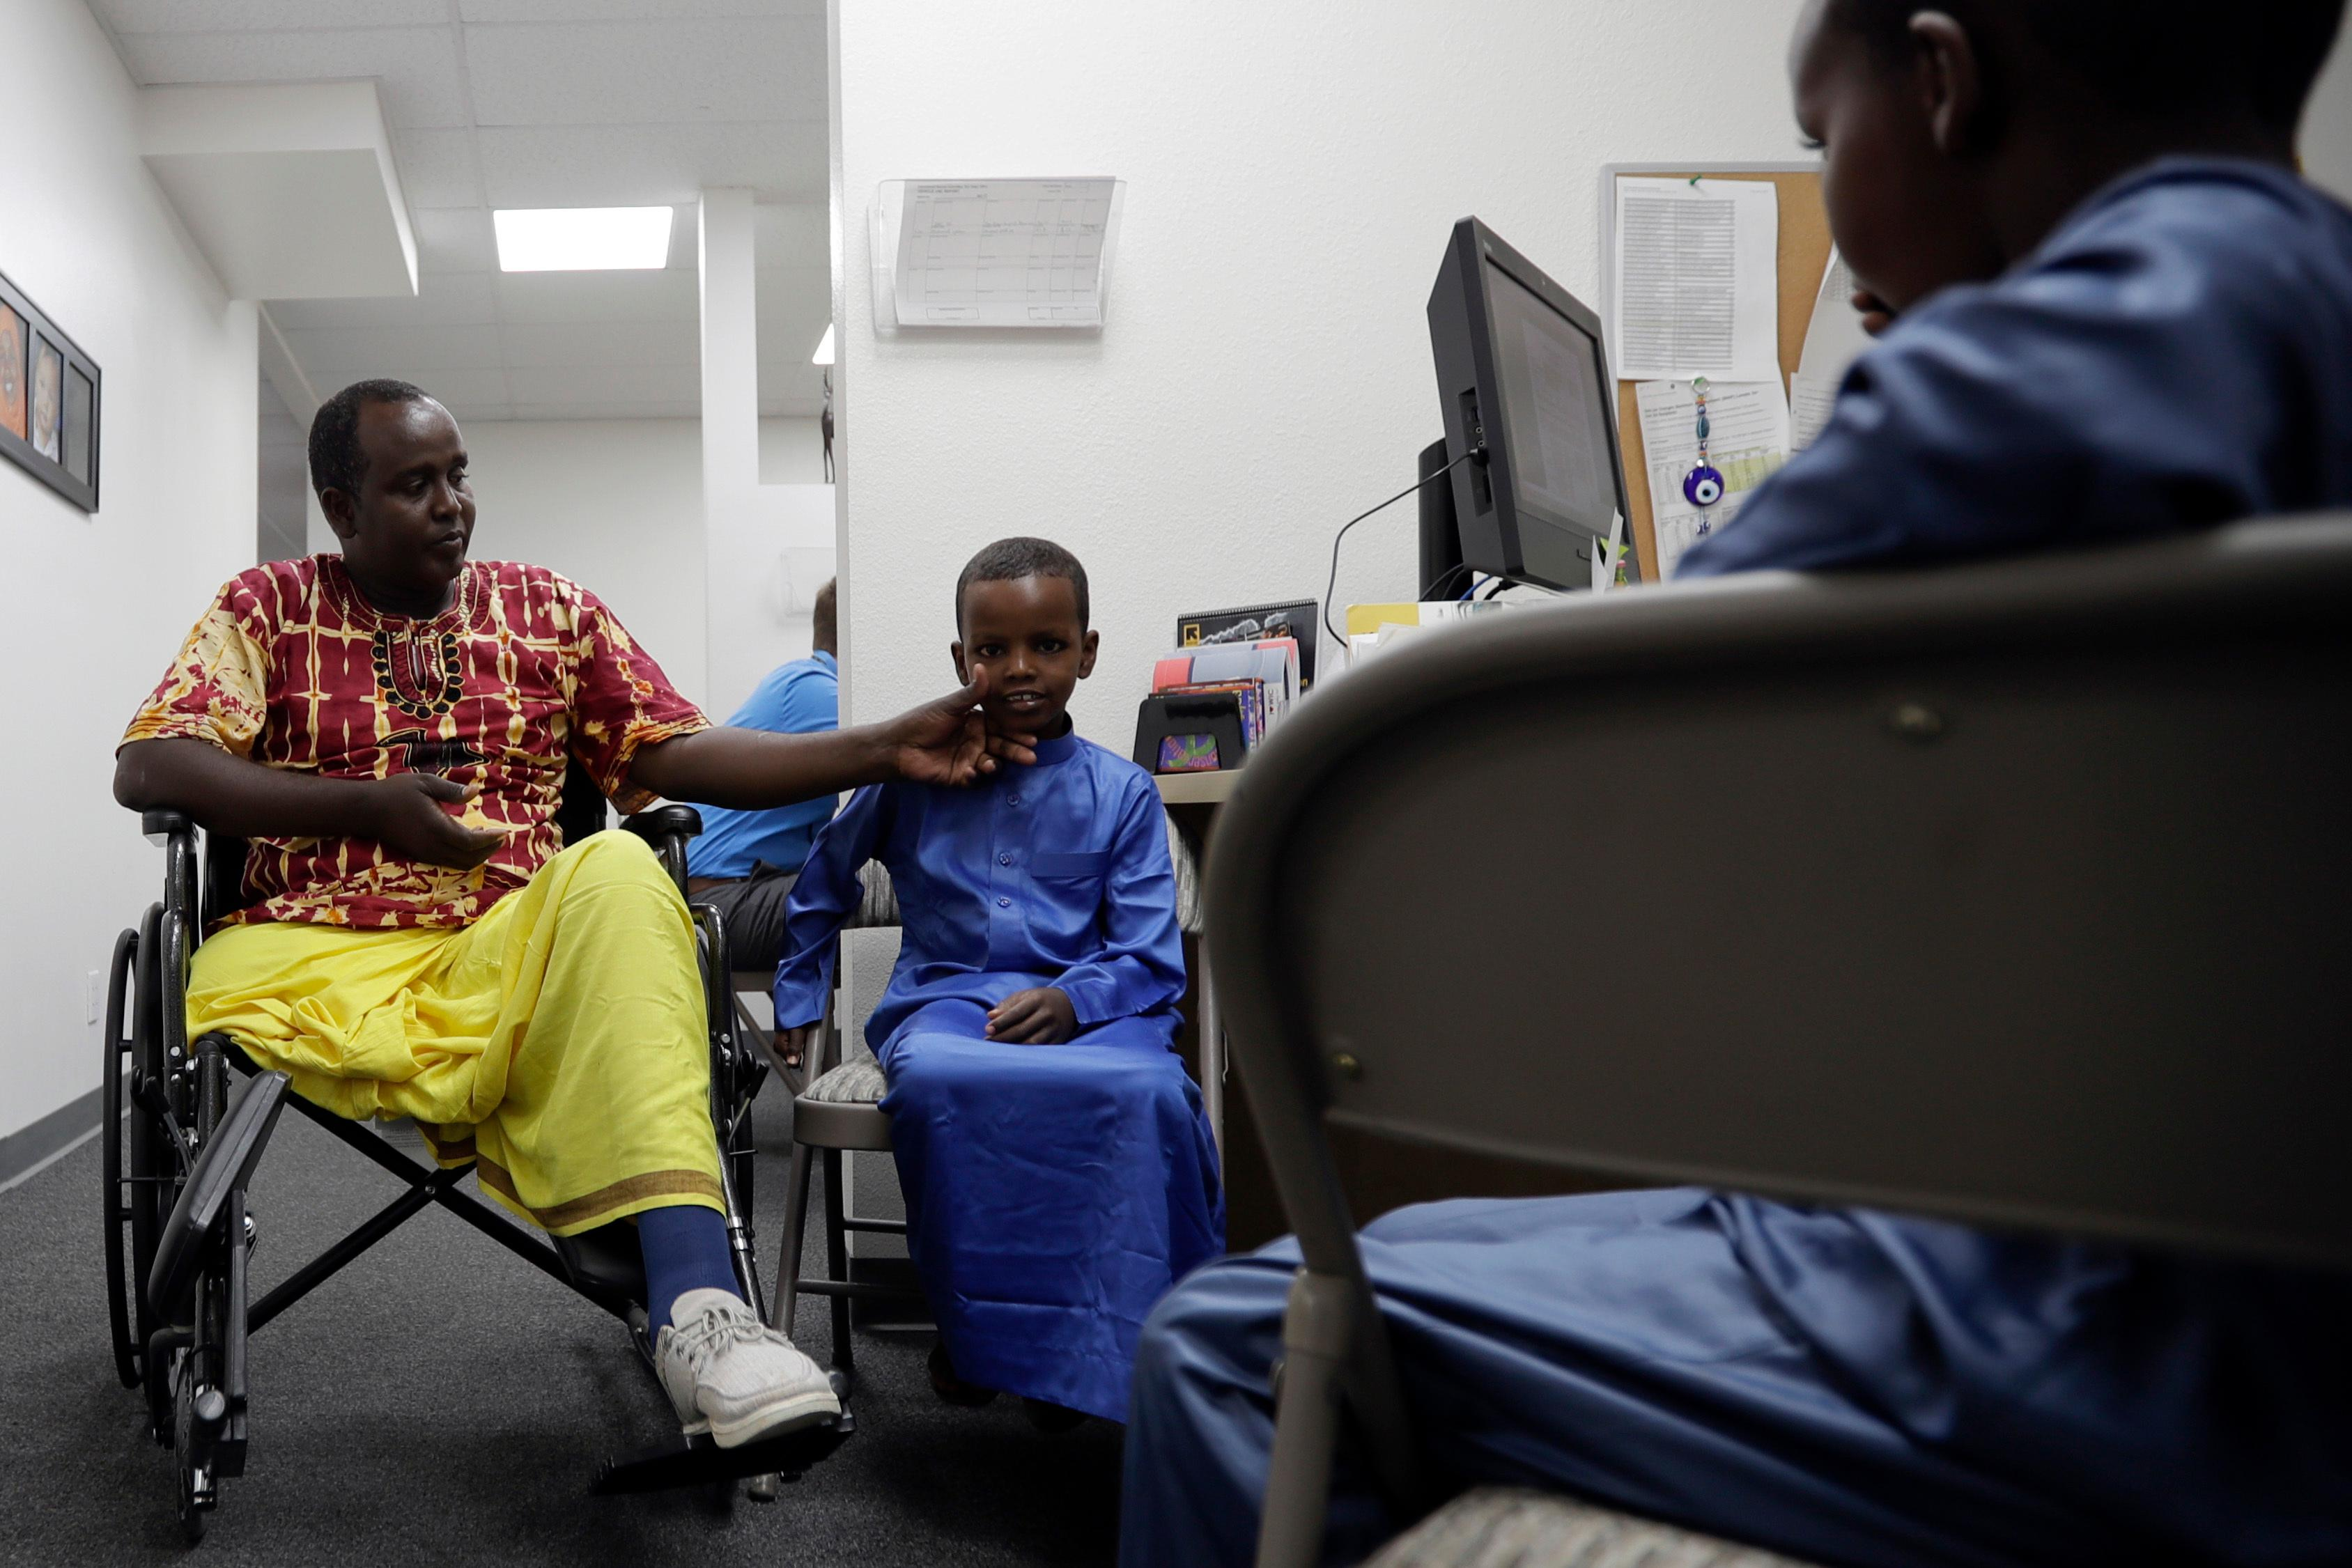 Ali Said, of Somalia, left, waits at a center for refugees with his two sons Thursday, July 6, 2017, in San Diego. Said, whose leg was blown off by a grenade, says he feels unbelievably lucky to be among the last refugees allowed into the United States before stricter rules kick in as part of the Trump administration's travel ban. (AP Photo/Gregory Bull)